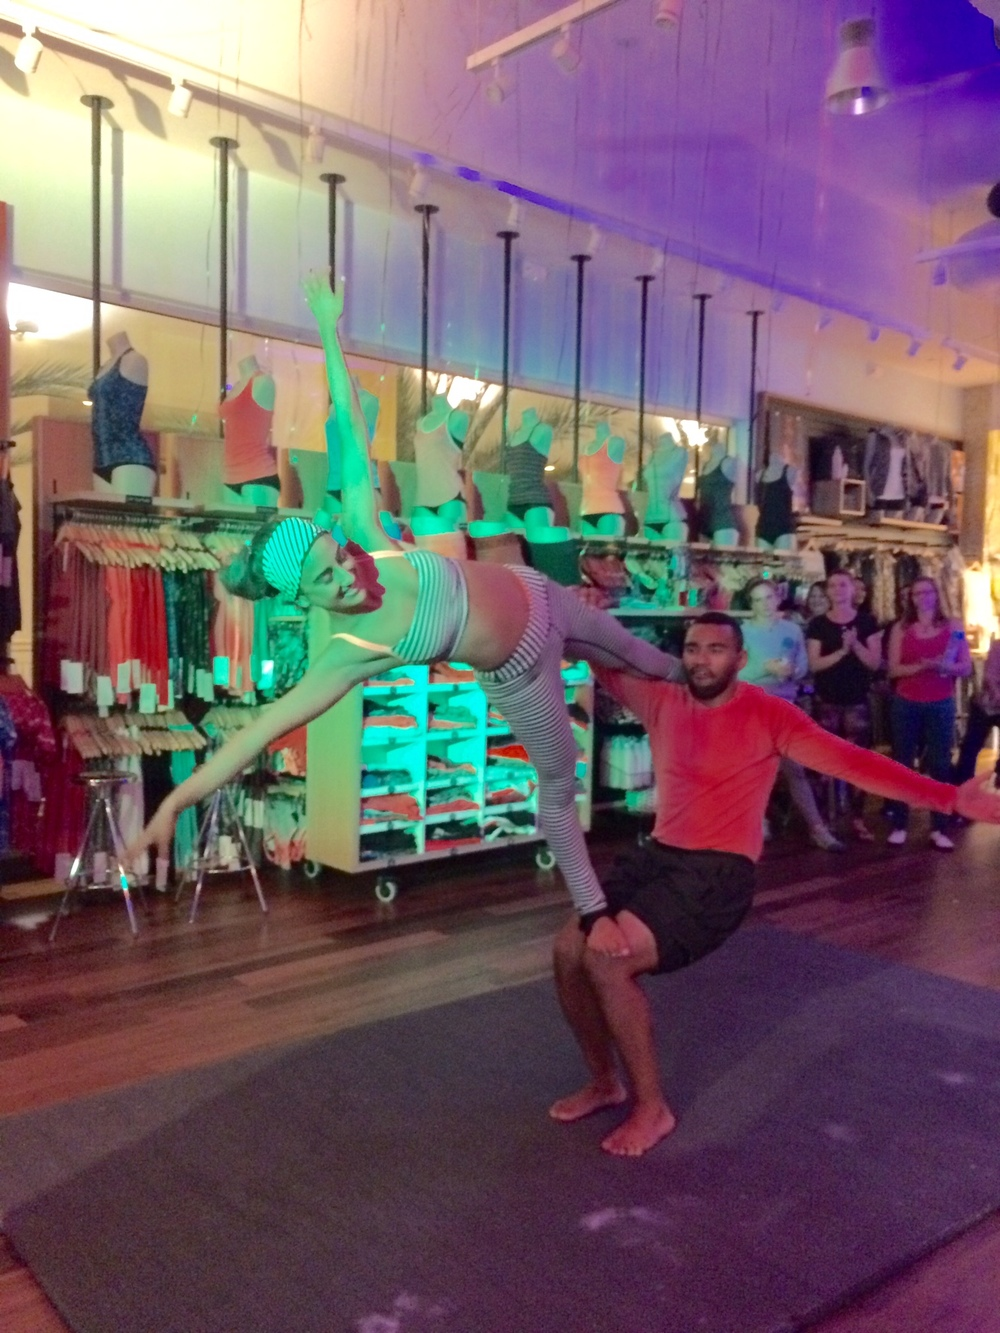 An acroyoga performance is one way to entertain and impress guests at a party.